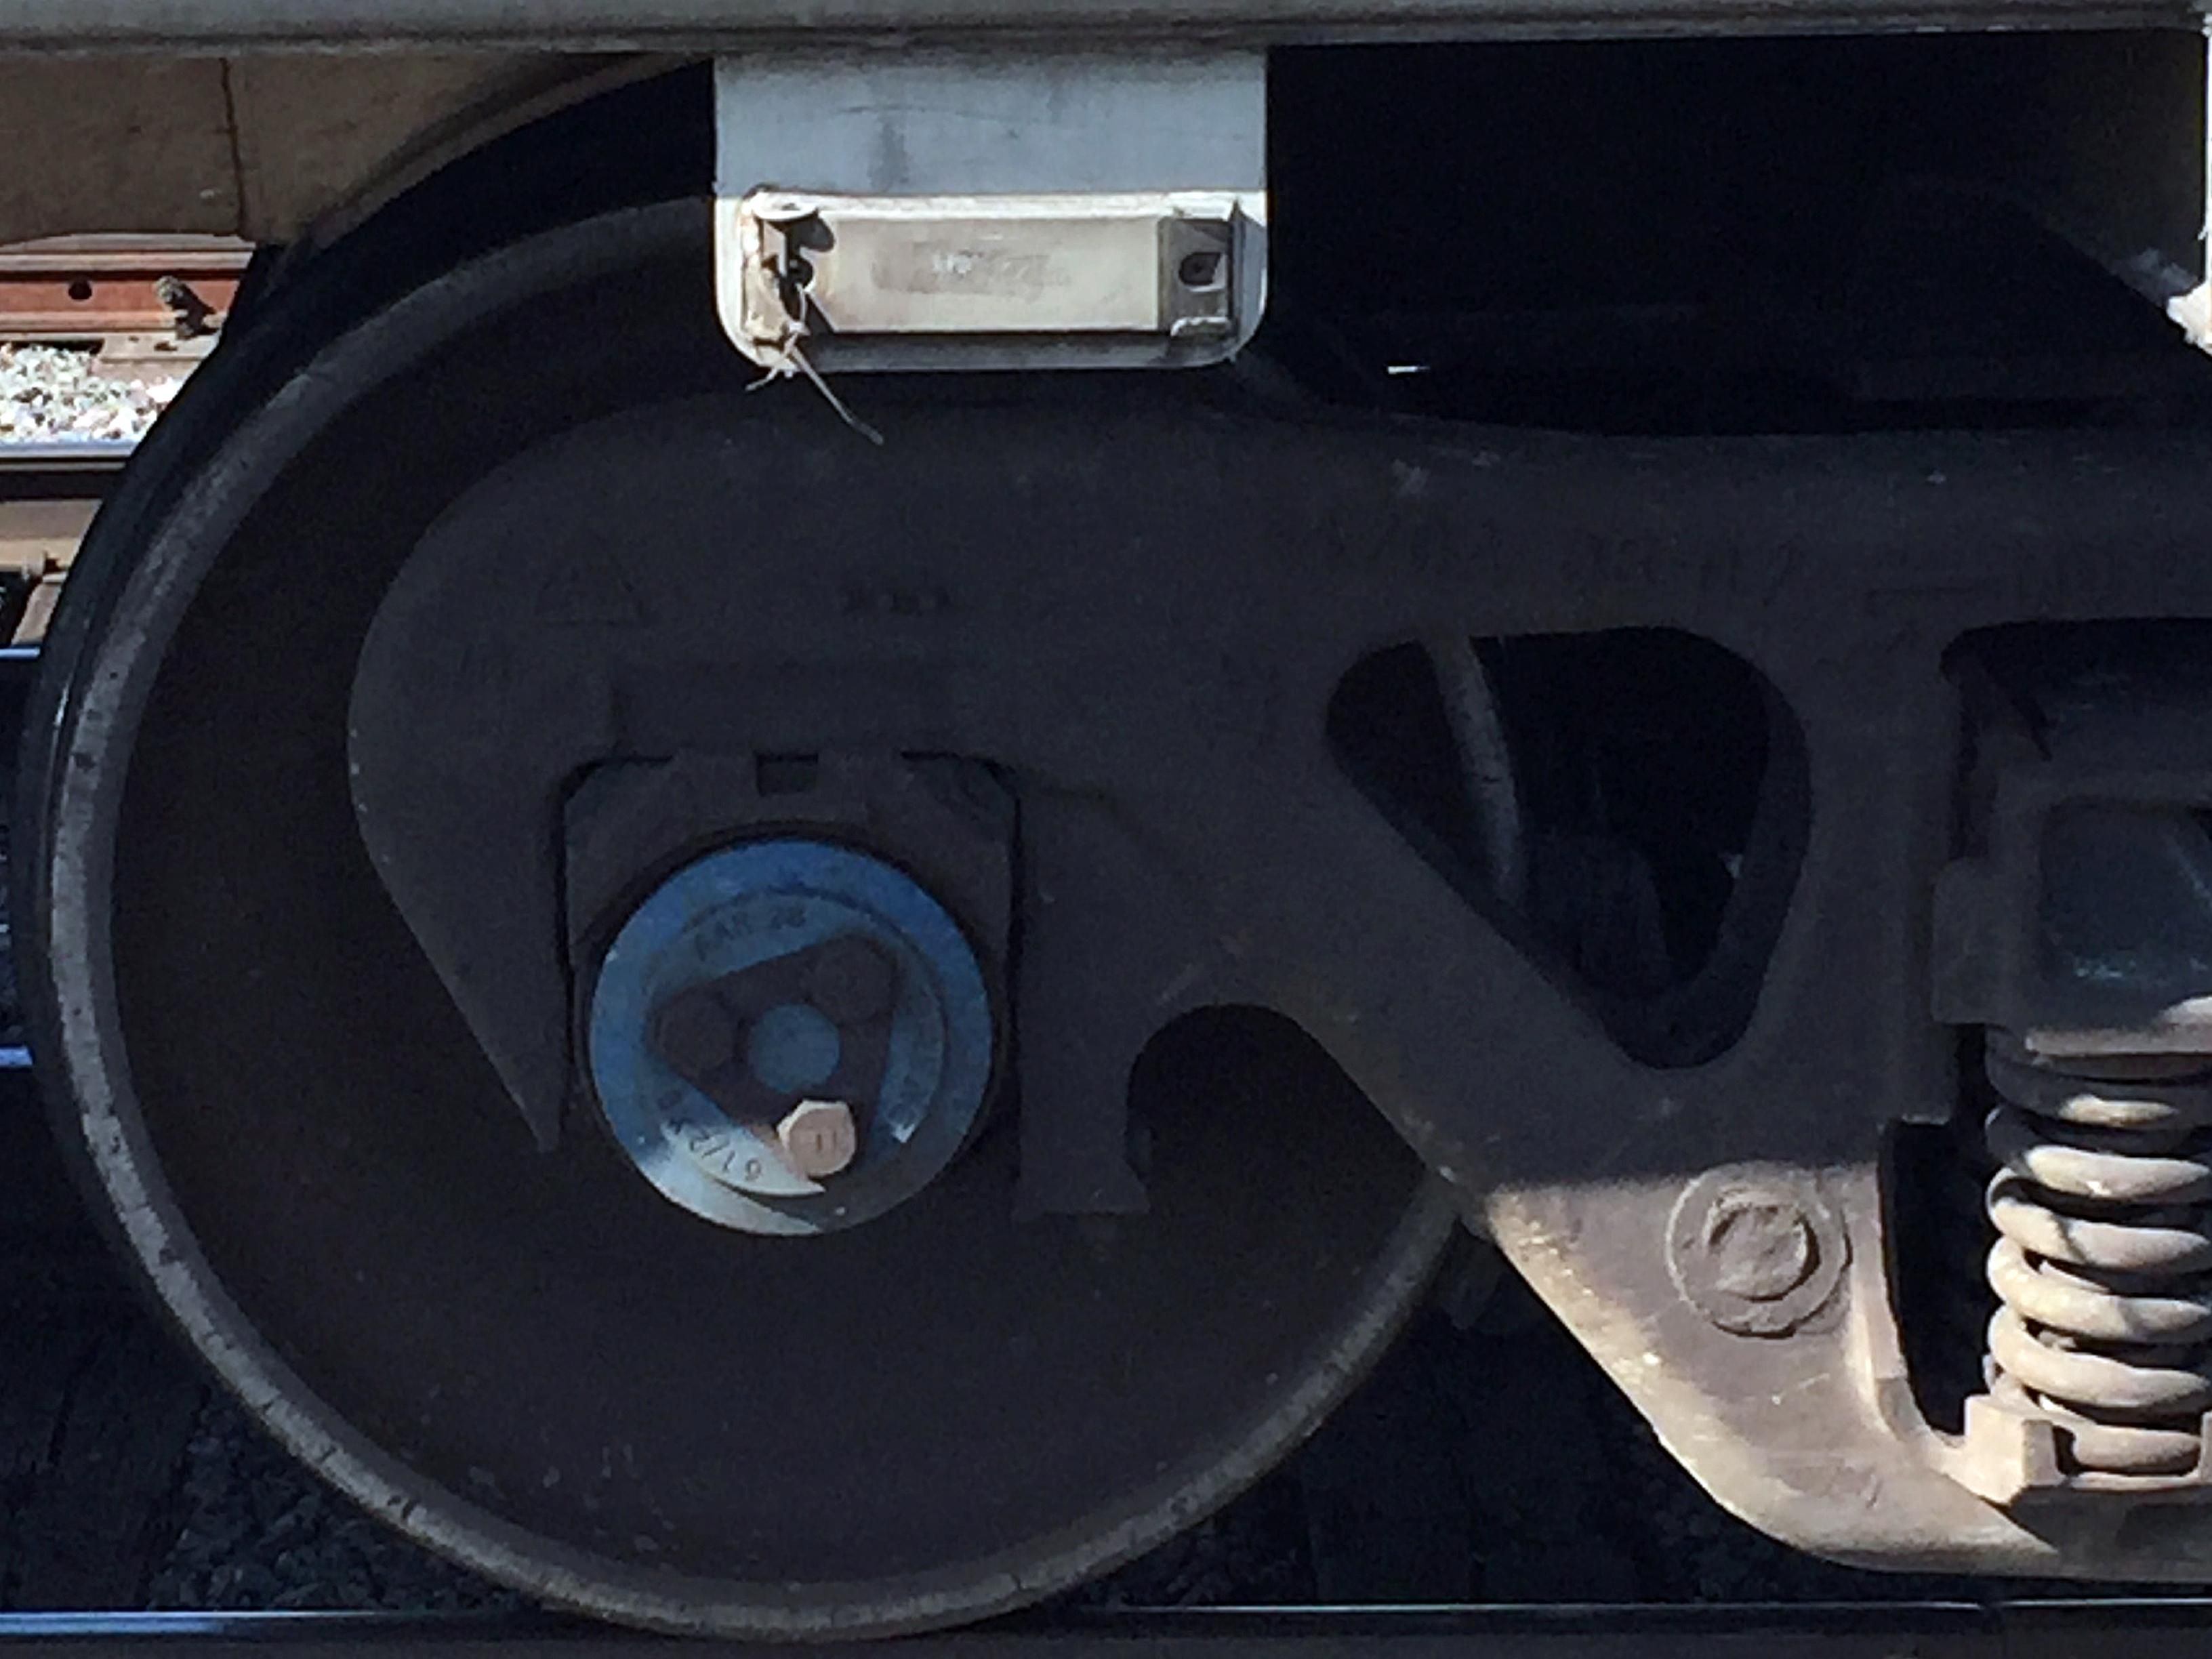 An Automatic Equipment Identification (AEI) tag.